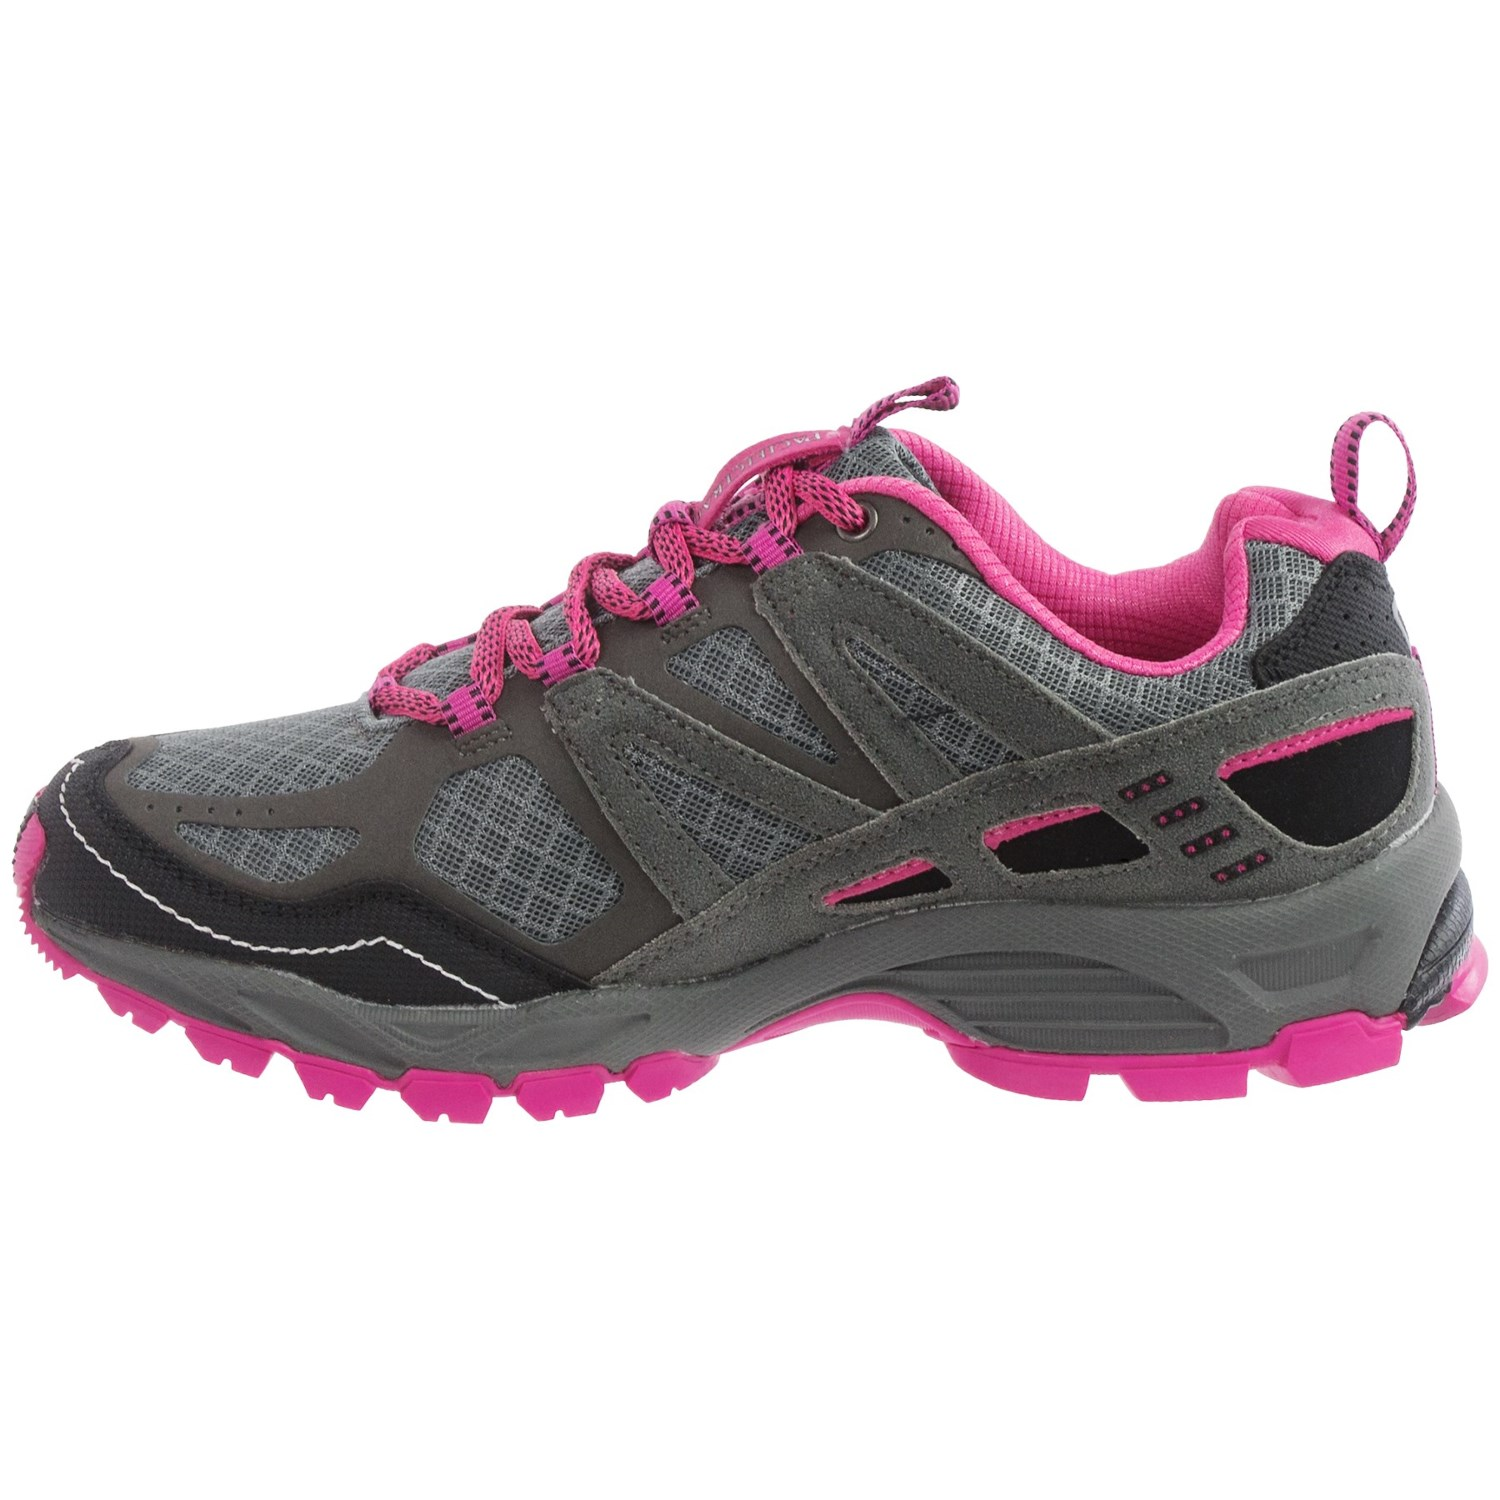 Pacific Trail Tioga Trail Running Sneaker Q1wy8CER